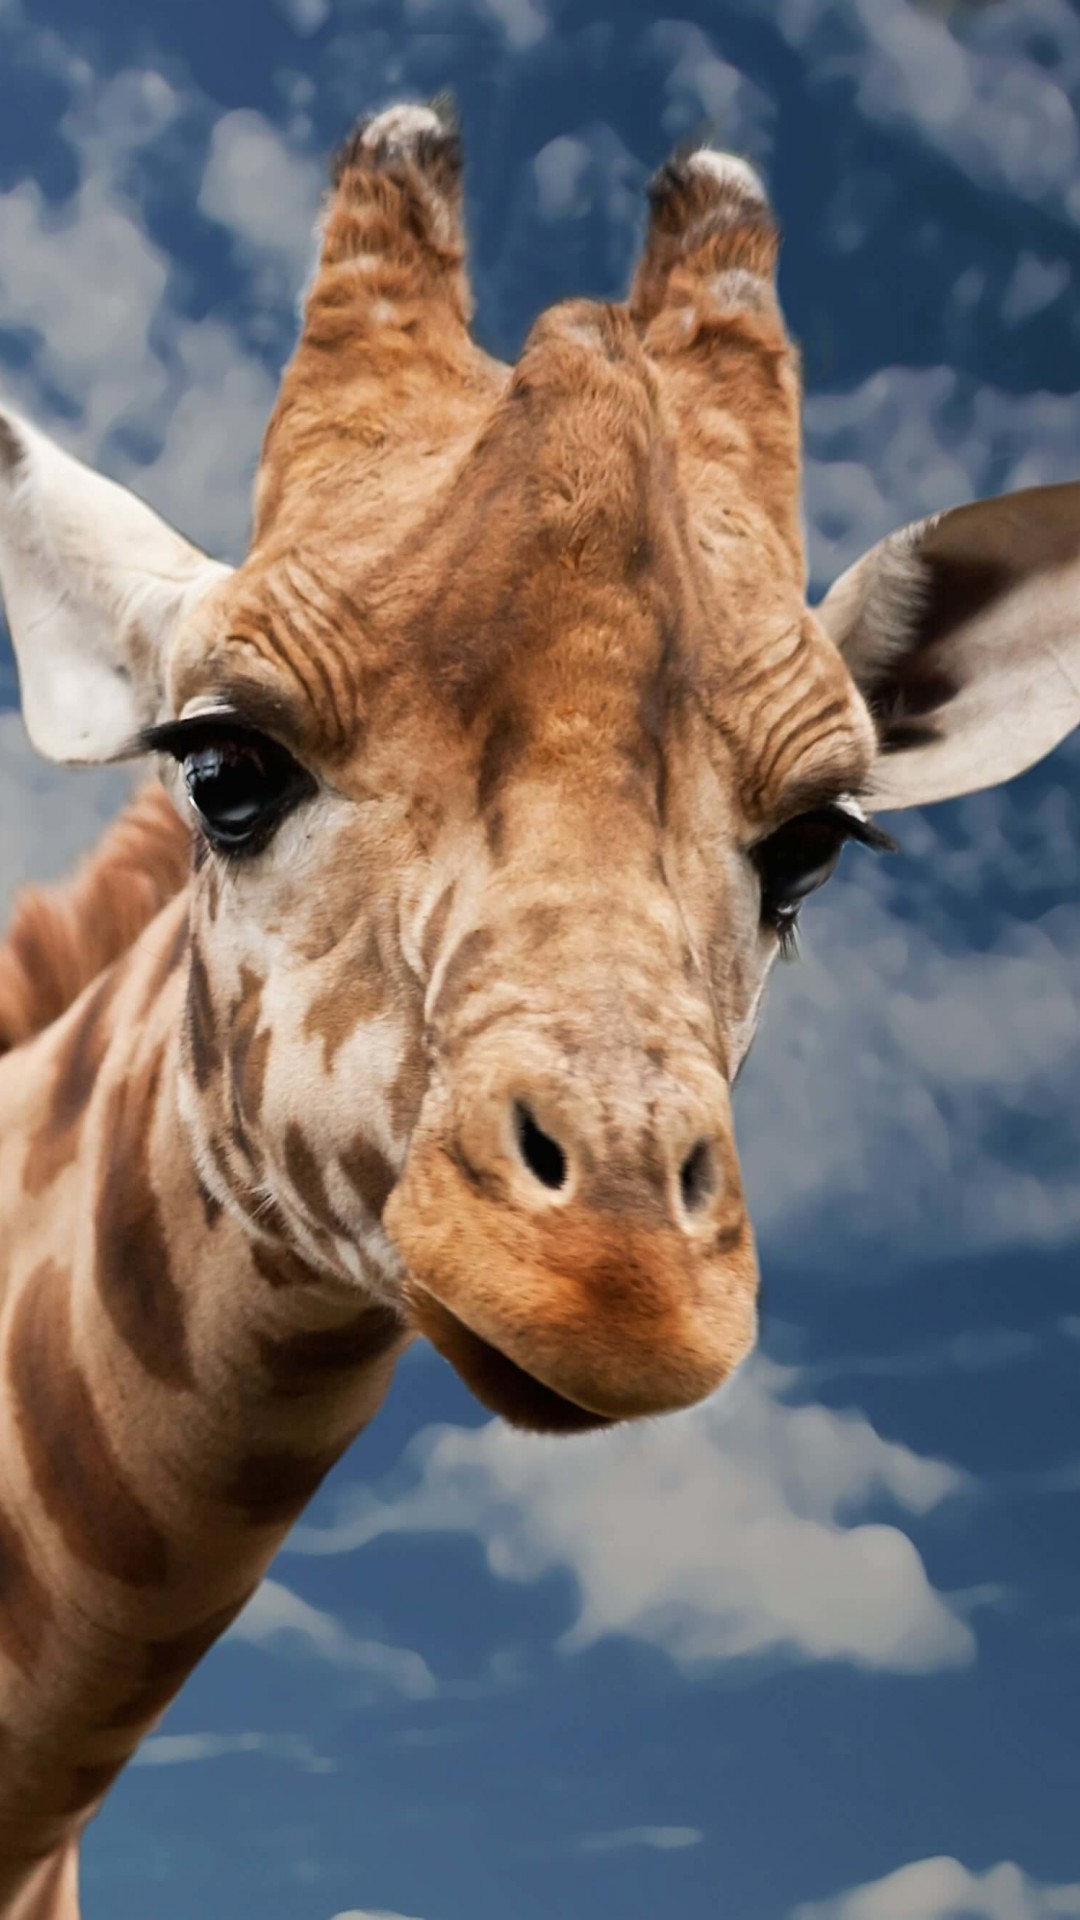 Funny Giraffe Wallpaper for Google Nexus 5X